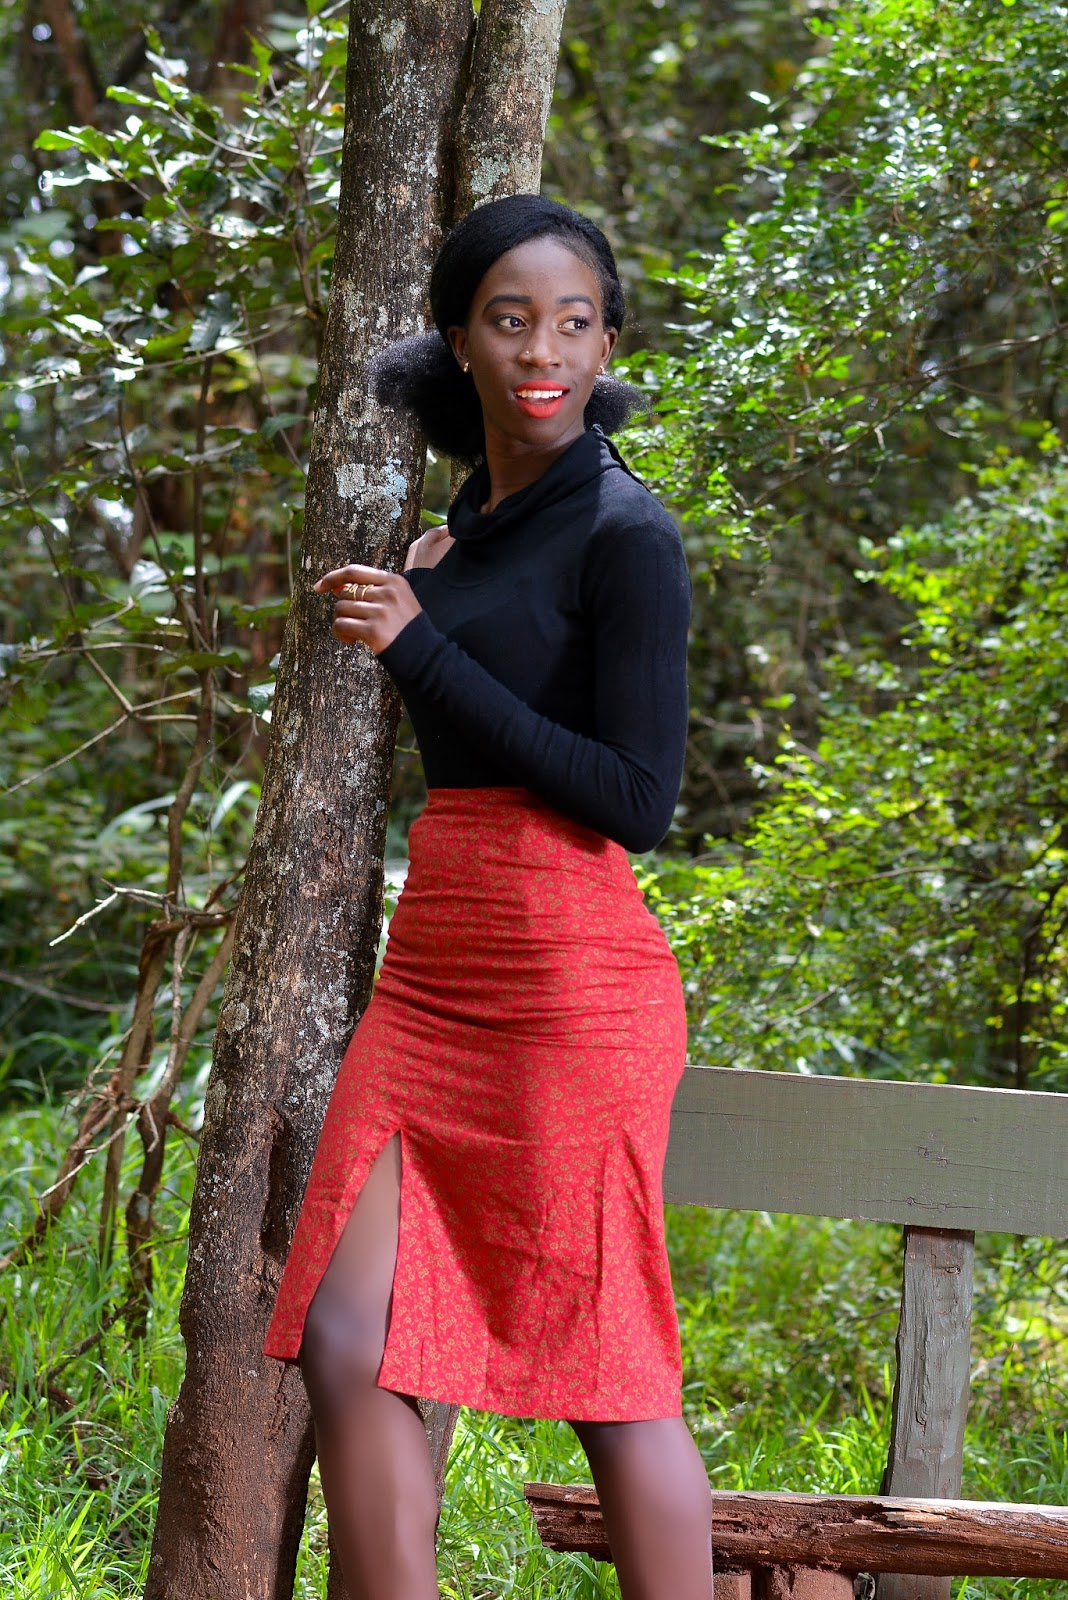 Ezil, style with ezil, african fashion blogger, Kenyan fashion blogger, Kenyan designer, Thrift Transformations, Pencil skirts, FronT slit skirts, How to wear a red Skirt, How to style a red front slit skirt.